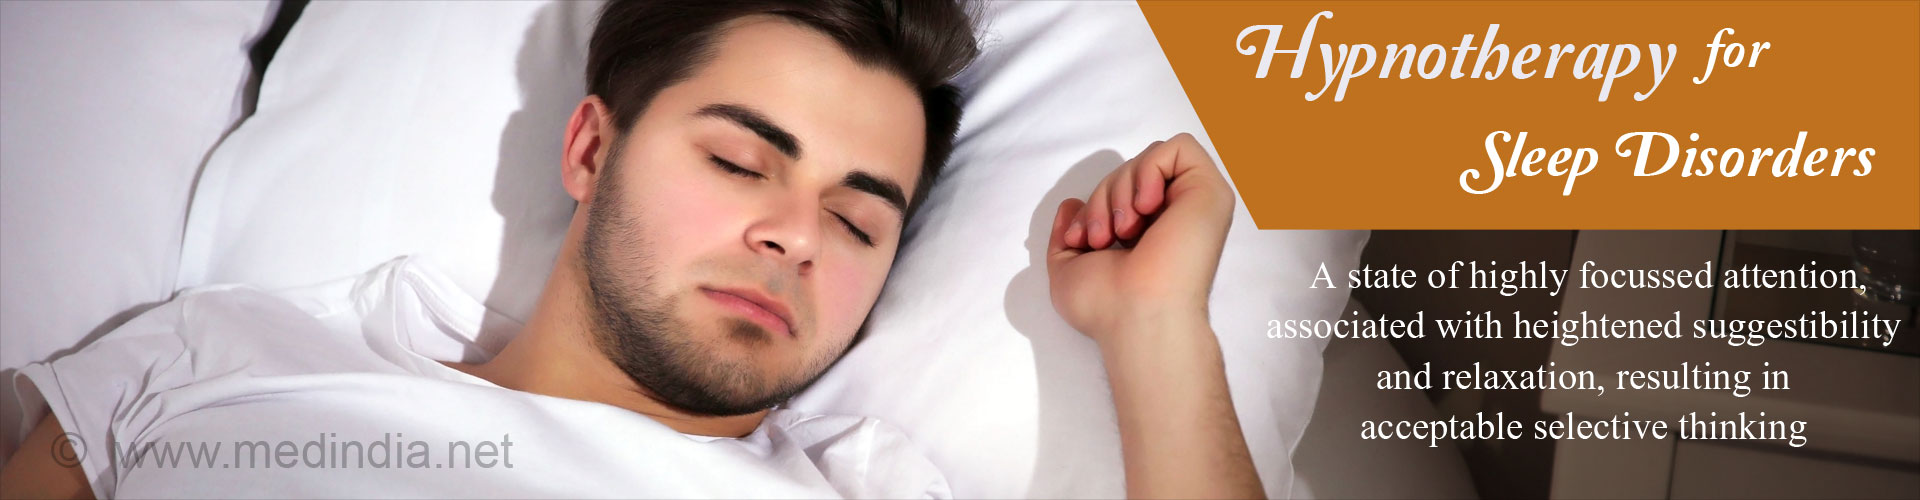 Hypnotherapy for sleep disorders -  A state of highly focused attention, associated with heightened suggestibility and relaxation, resulting in acceptable selective thinking